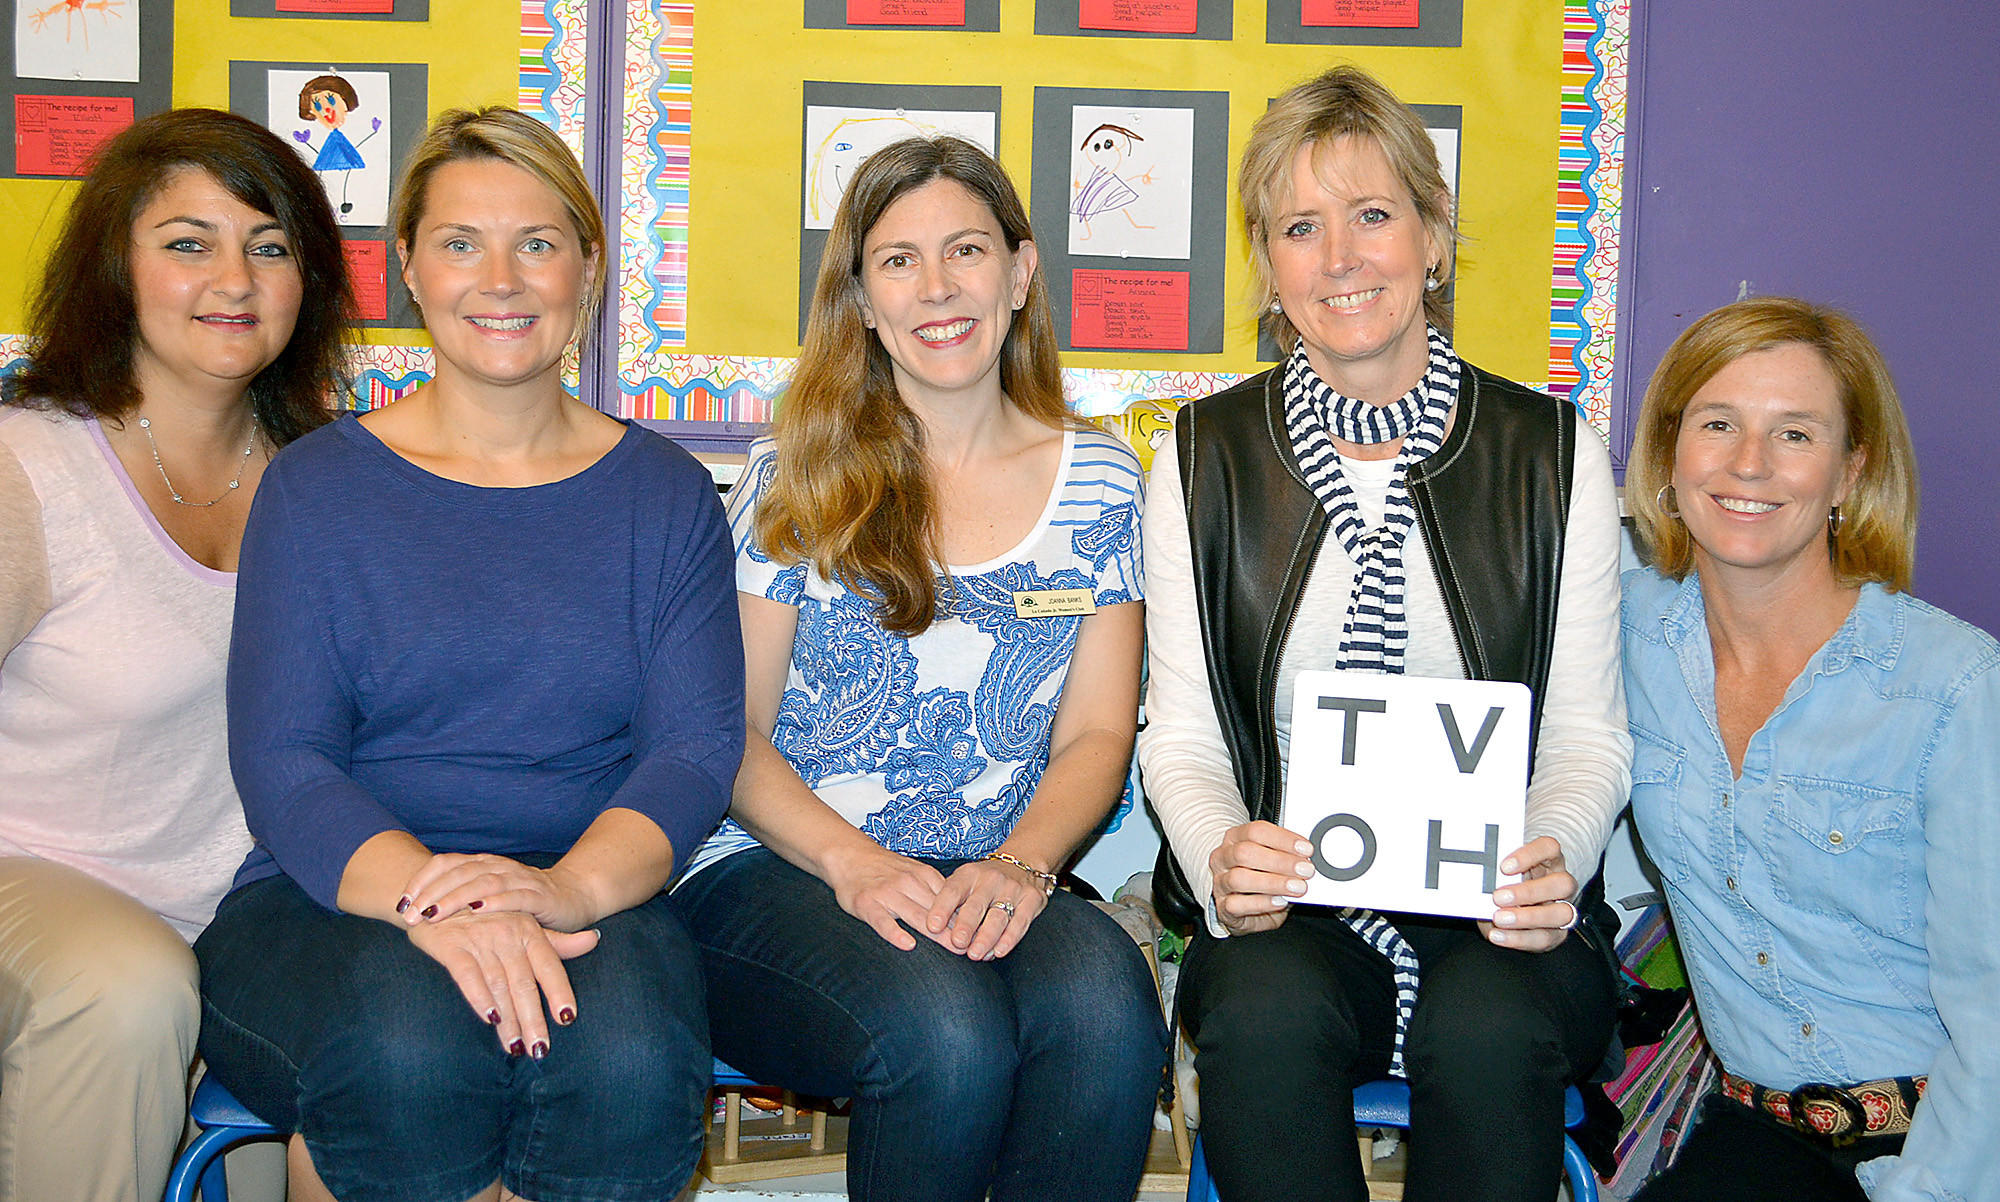 Members of the La Cañada Junior Women's Club recently visited preschools in La Cañada to screen students for vision problems. Participating in the program were, from left, Samantha Sandman, Rachel Fawcett, Joanna Banks, Kelly Chamberlain and Nadine Tapp.